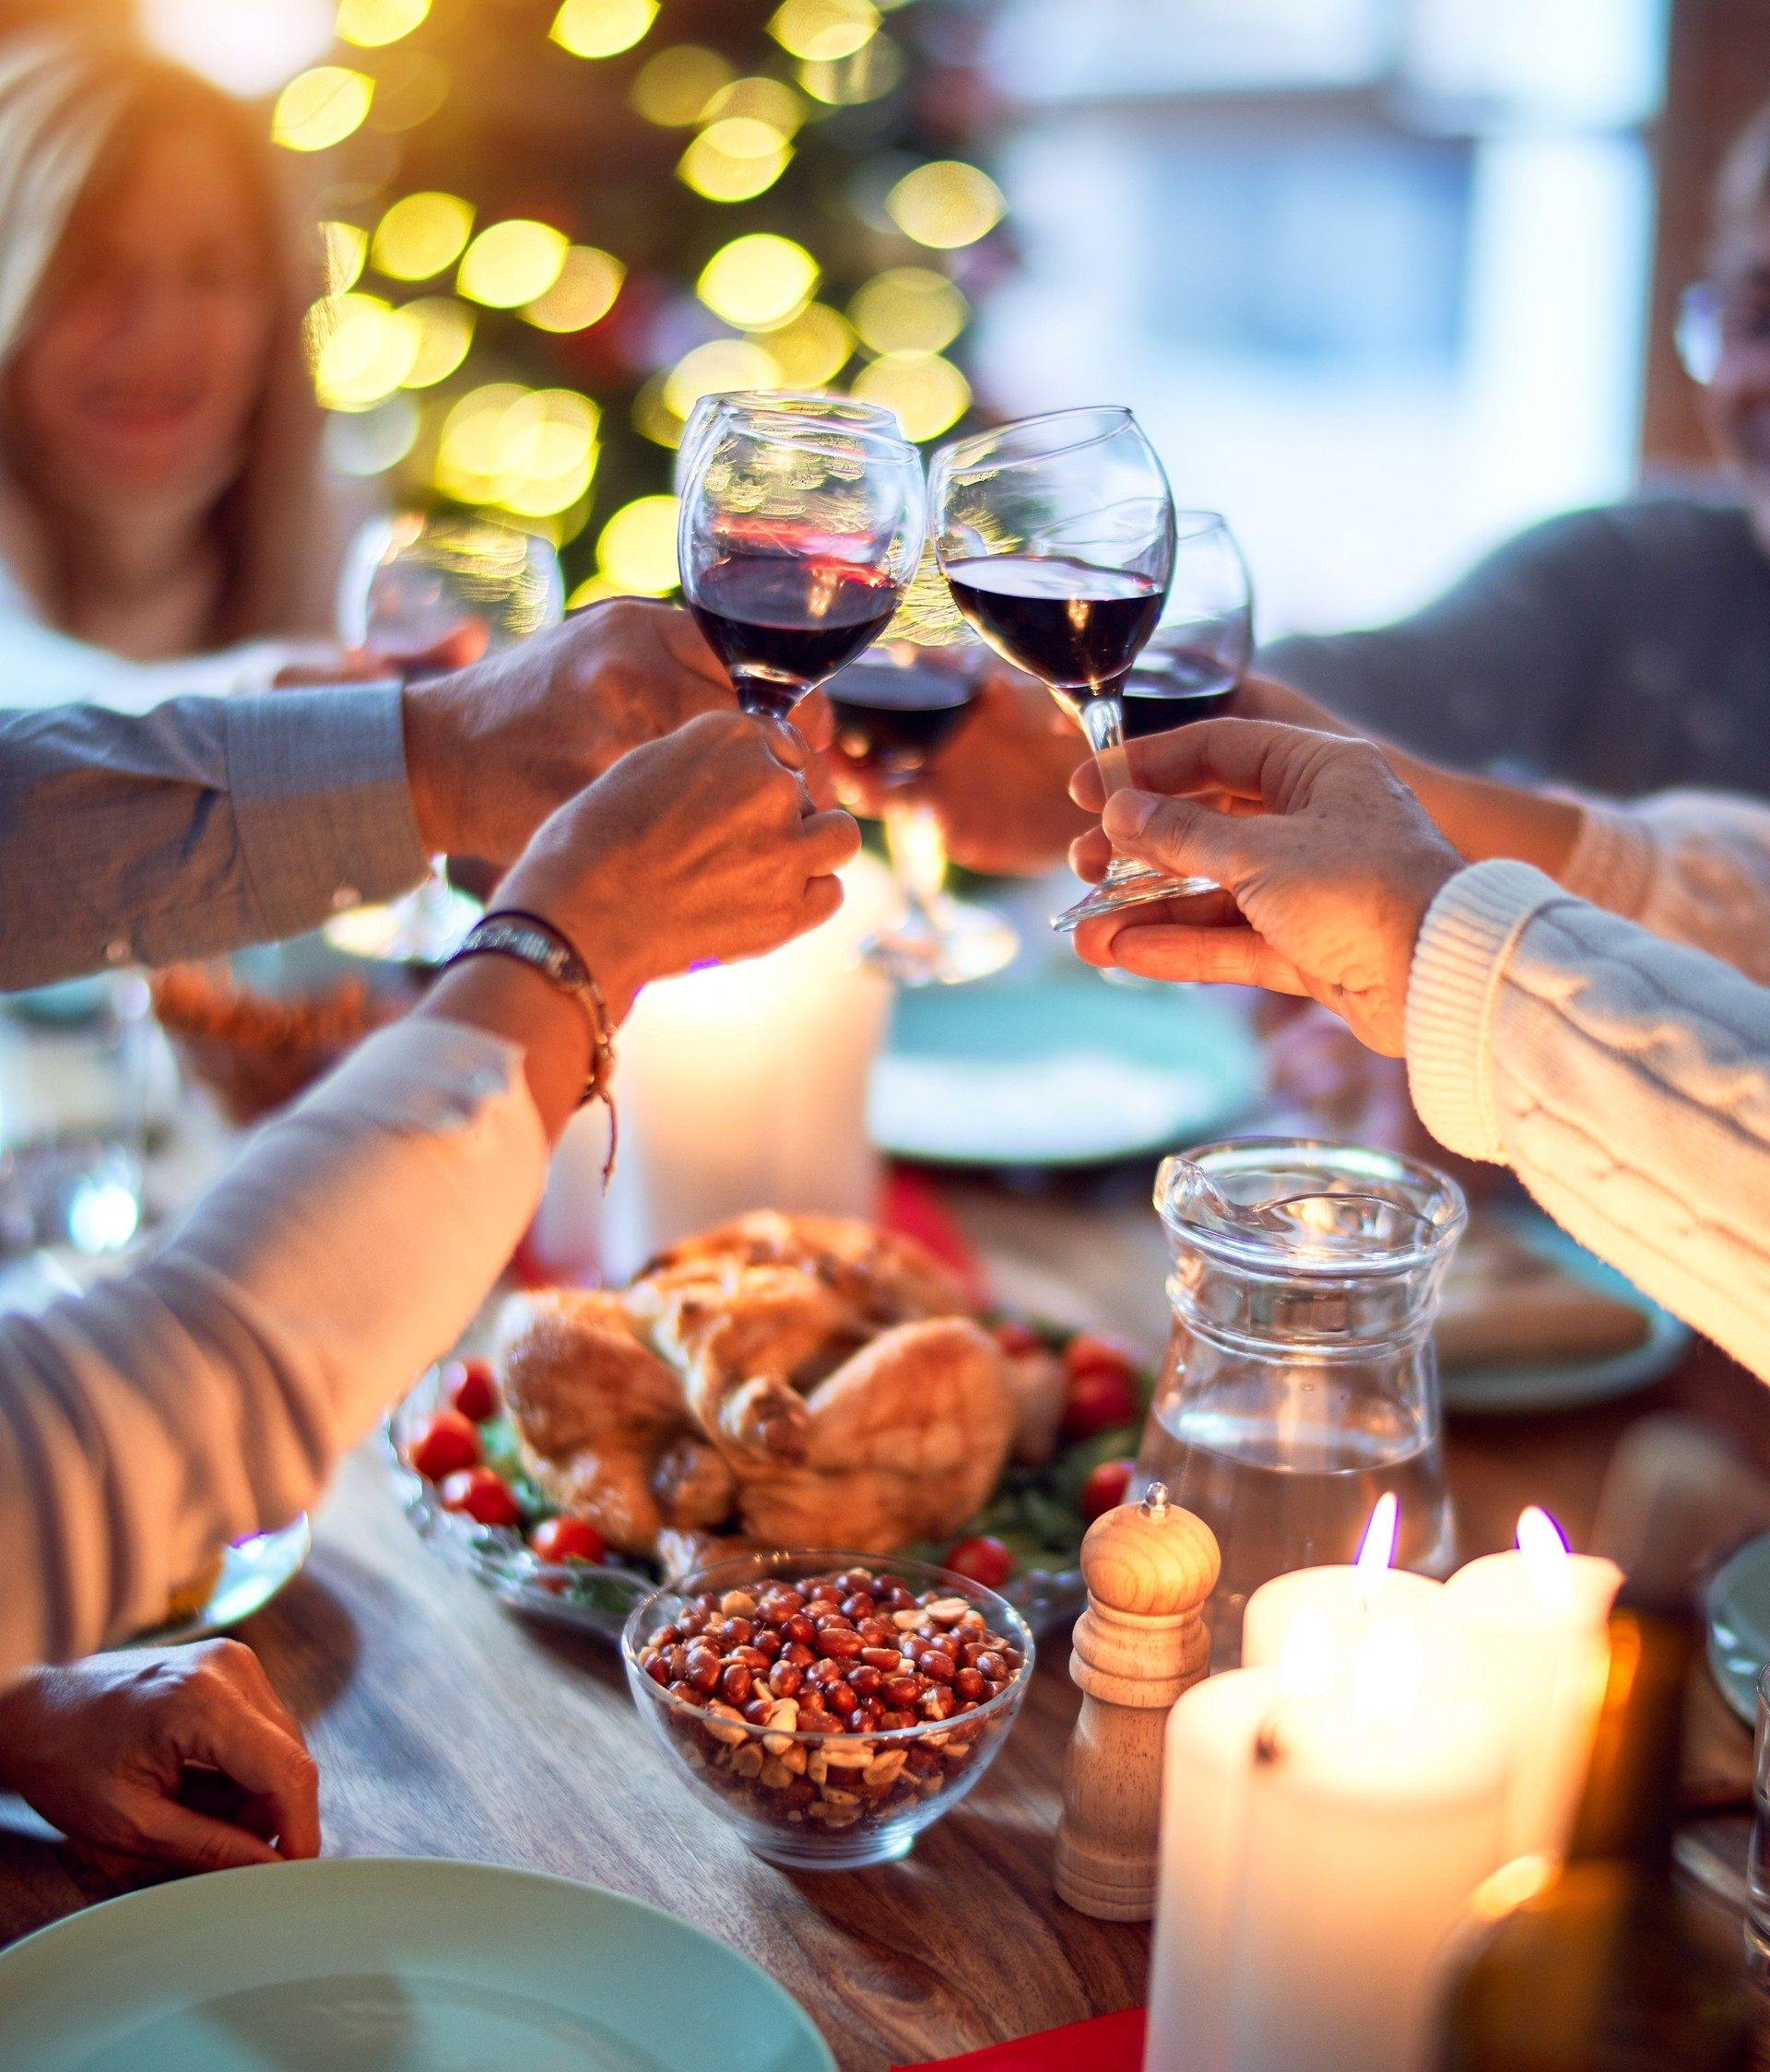 Hosting A Friendsgiving Dinner – A Fun Addition To Your Holiday Traditions